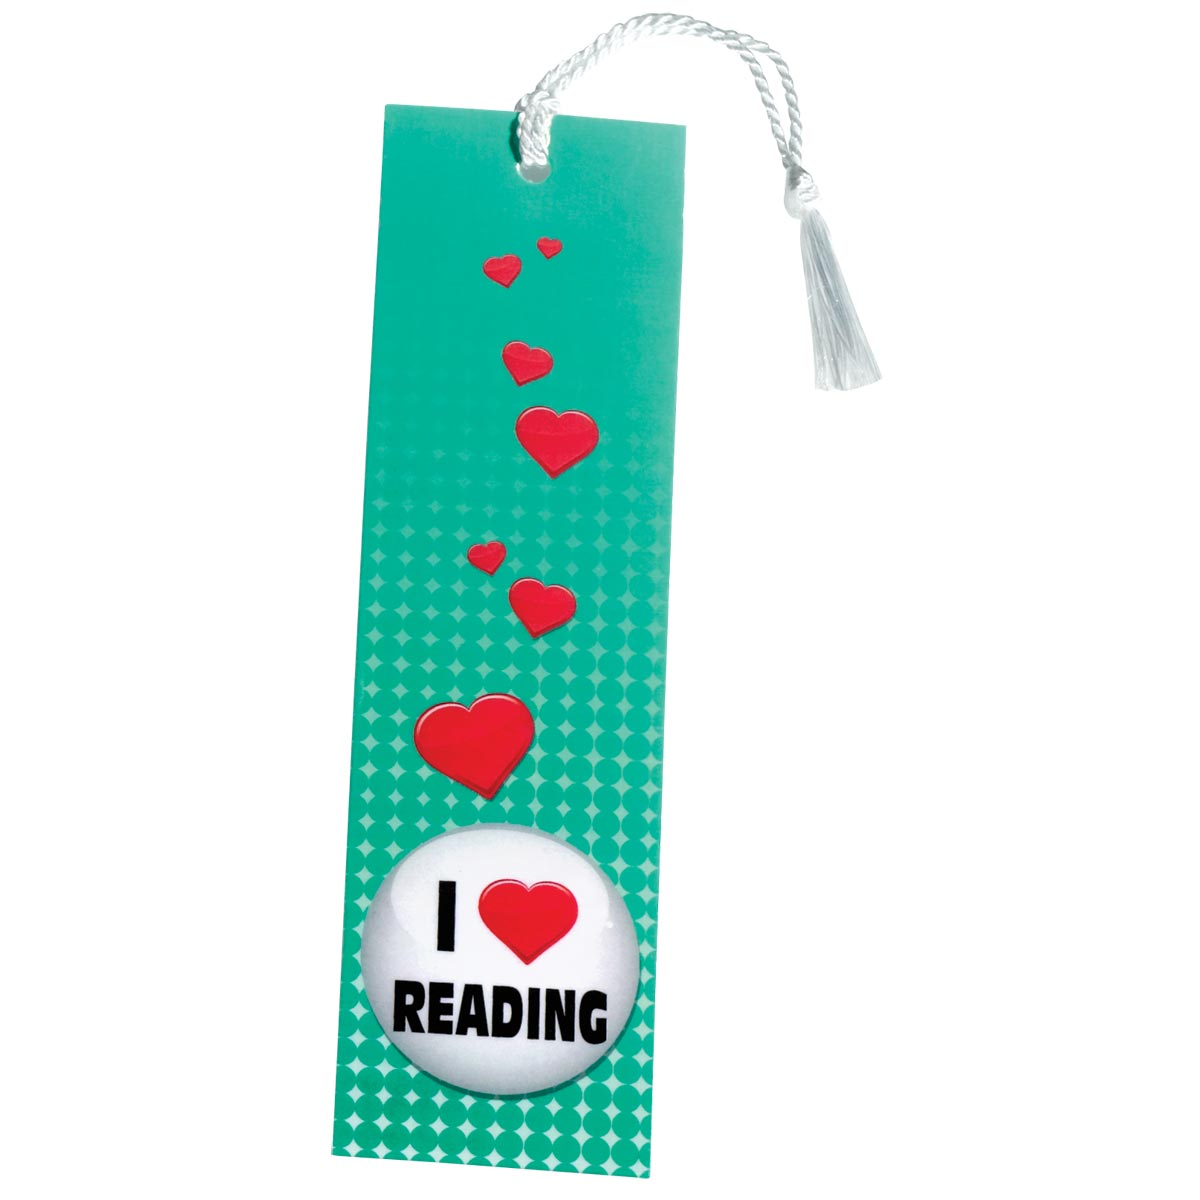 2740 - I Heart Reading Button